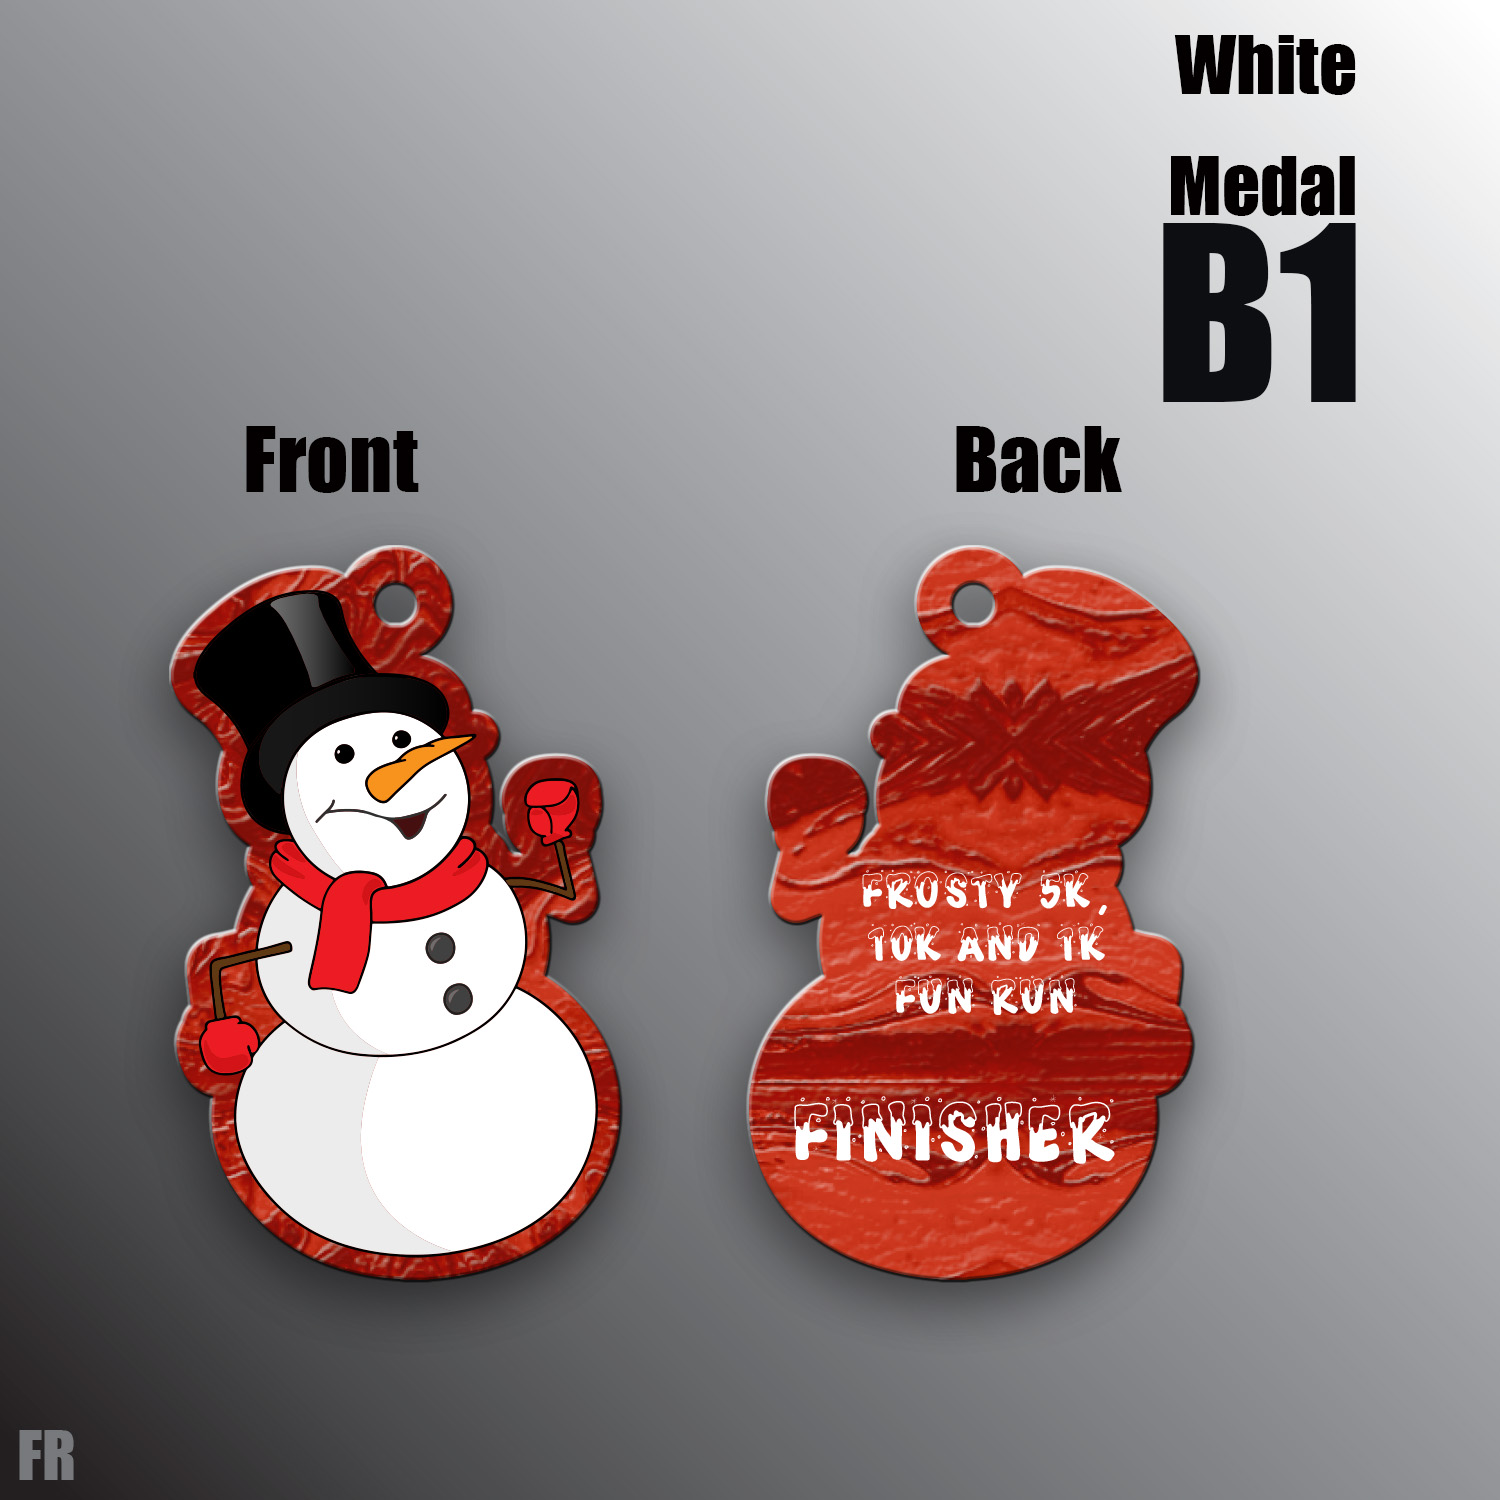 Frosty Finisher Medal